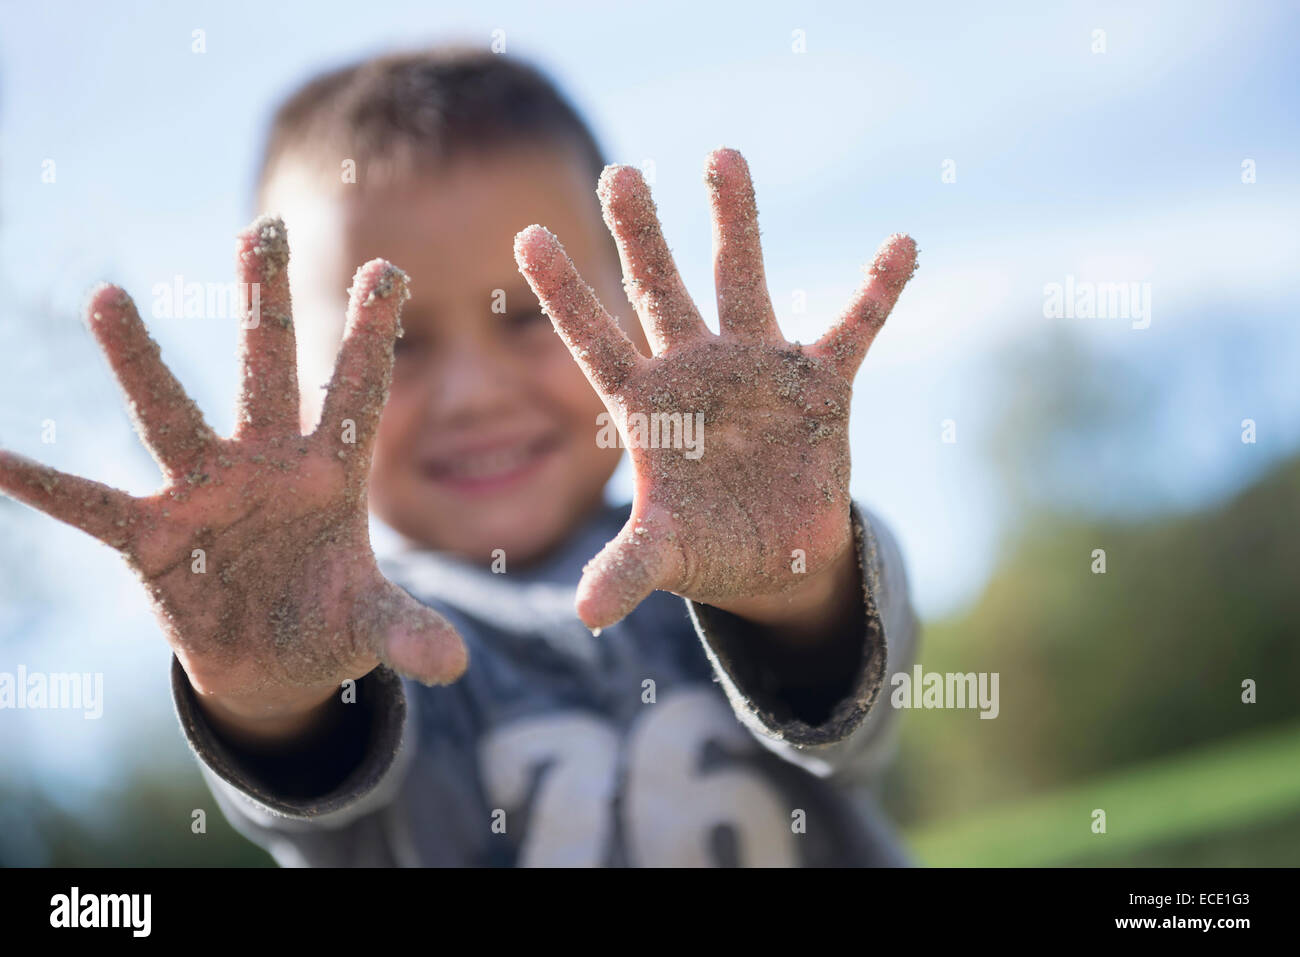 Small boy showing hands covered sand playground - Stock Image